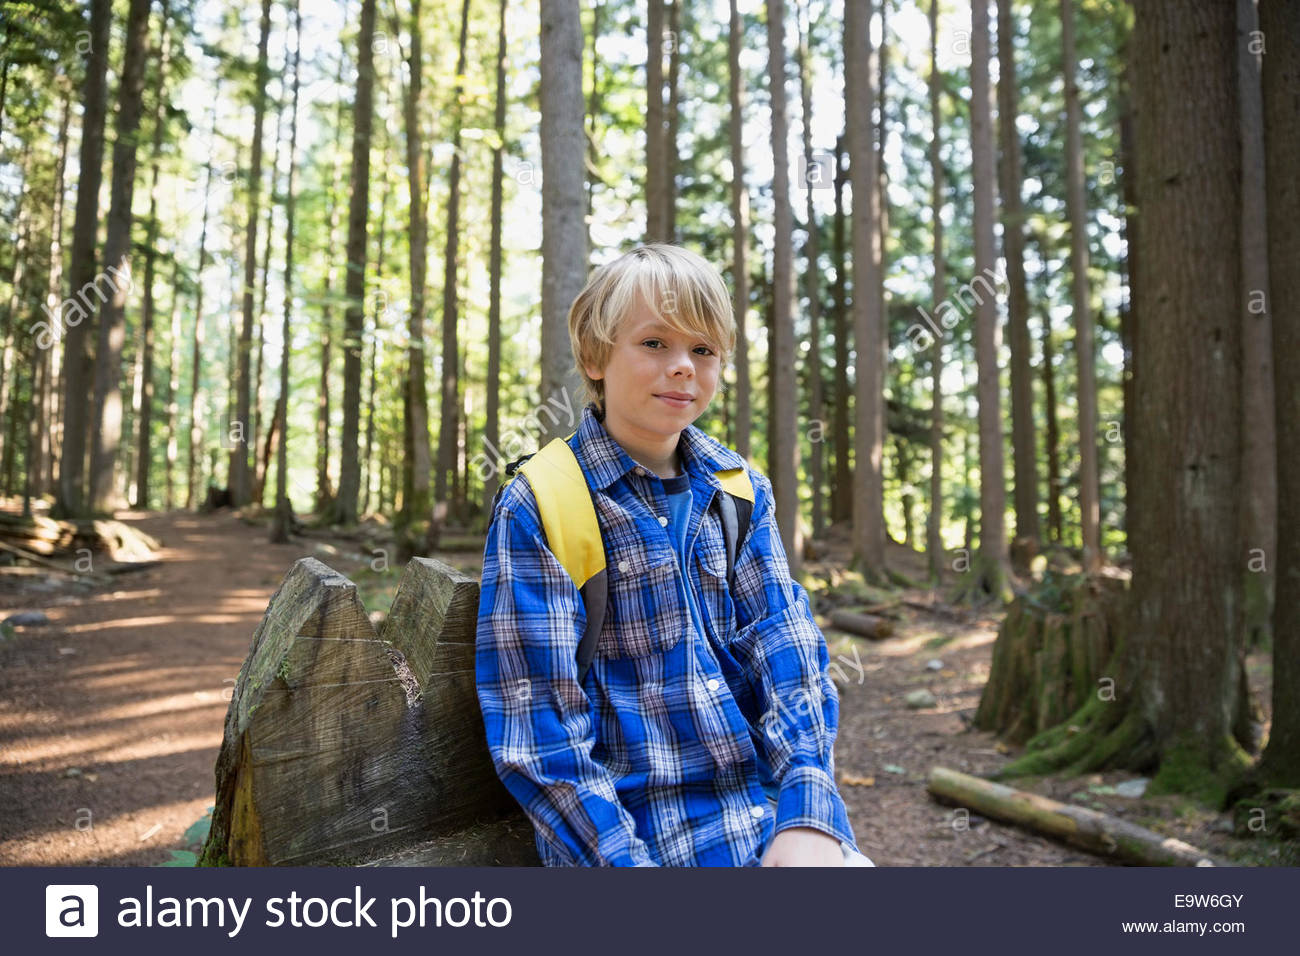 Portrait of boy with backpack in woods Photo Stock